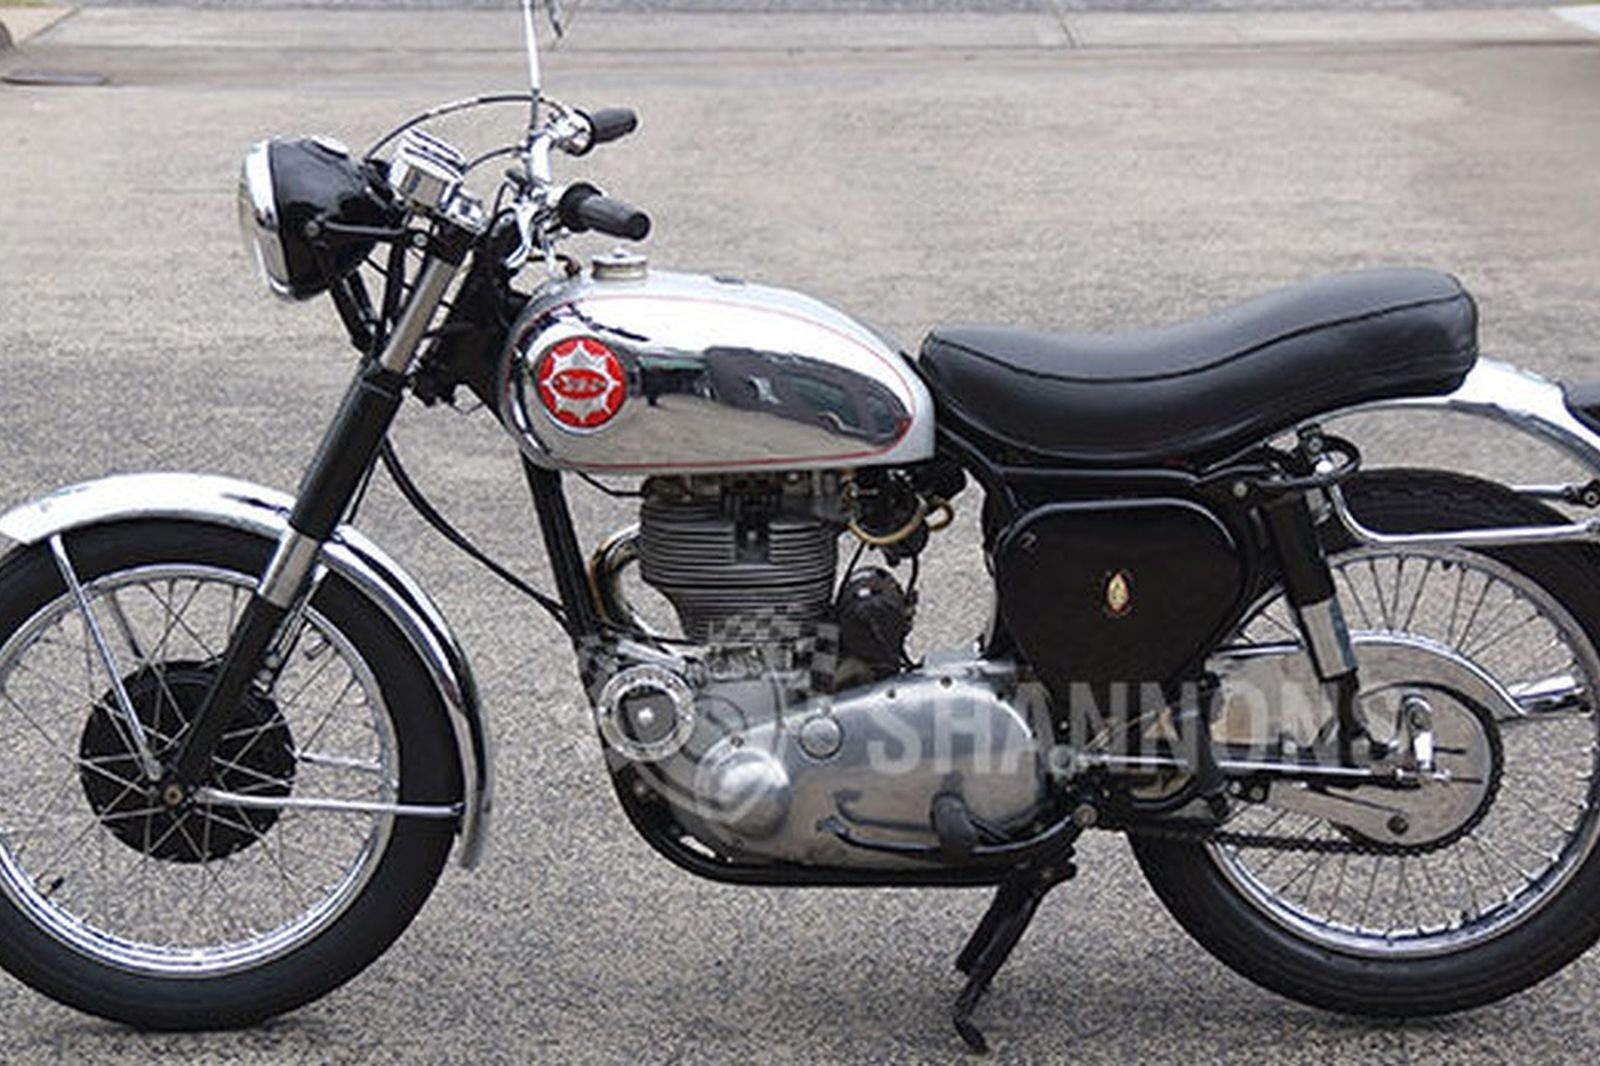 BSA DB34 Gold Star 500cc Motorcycle